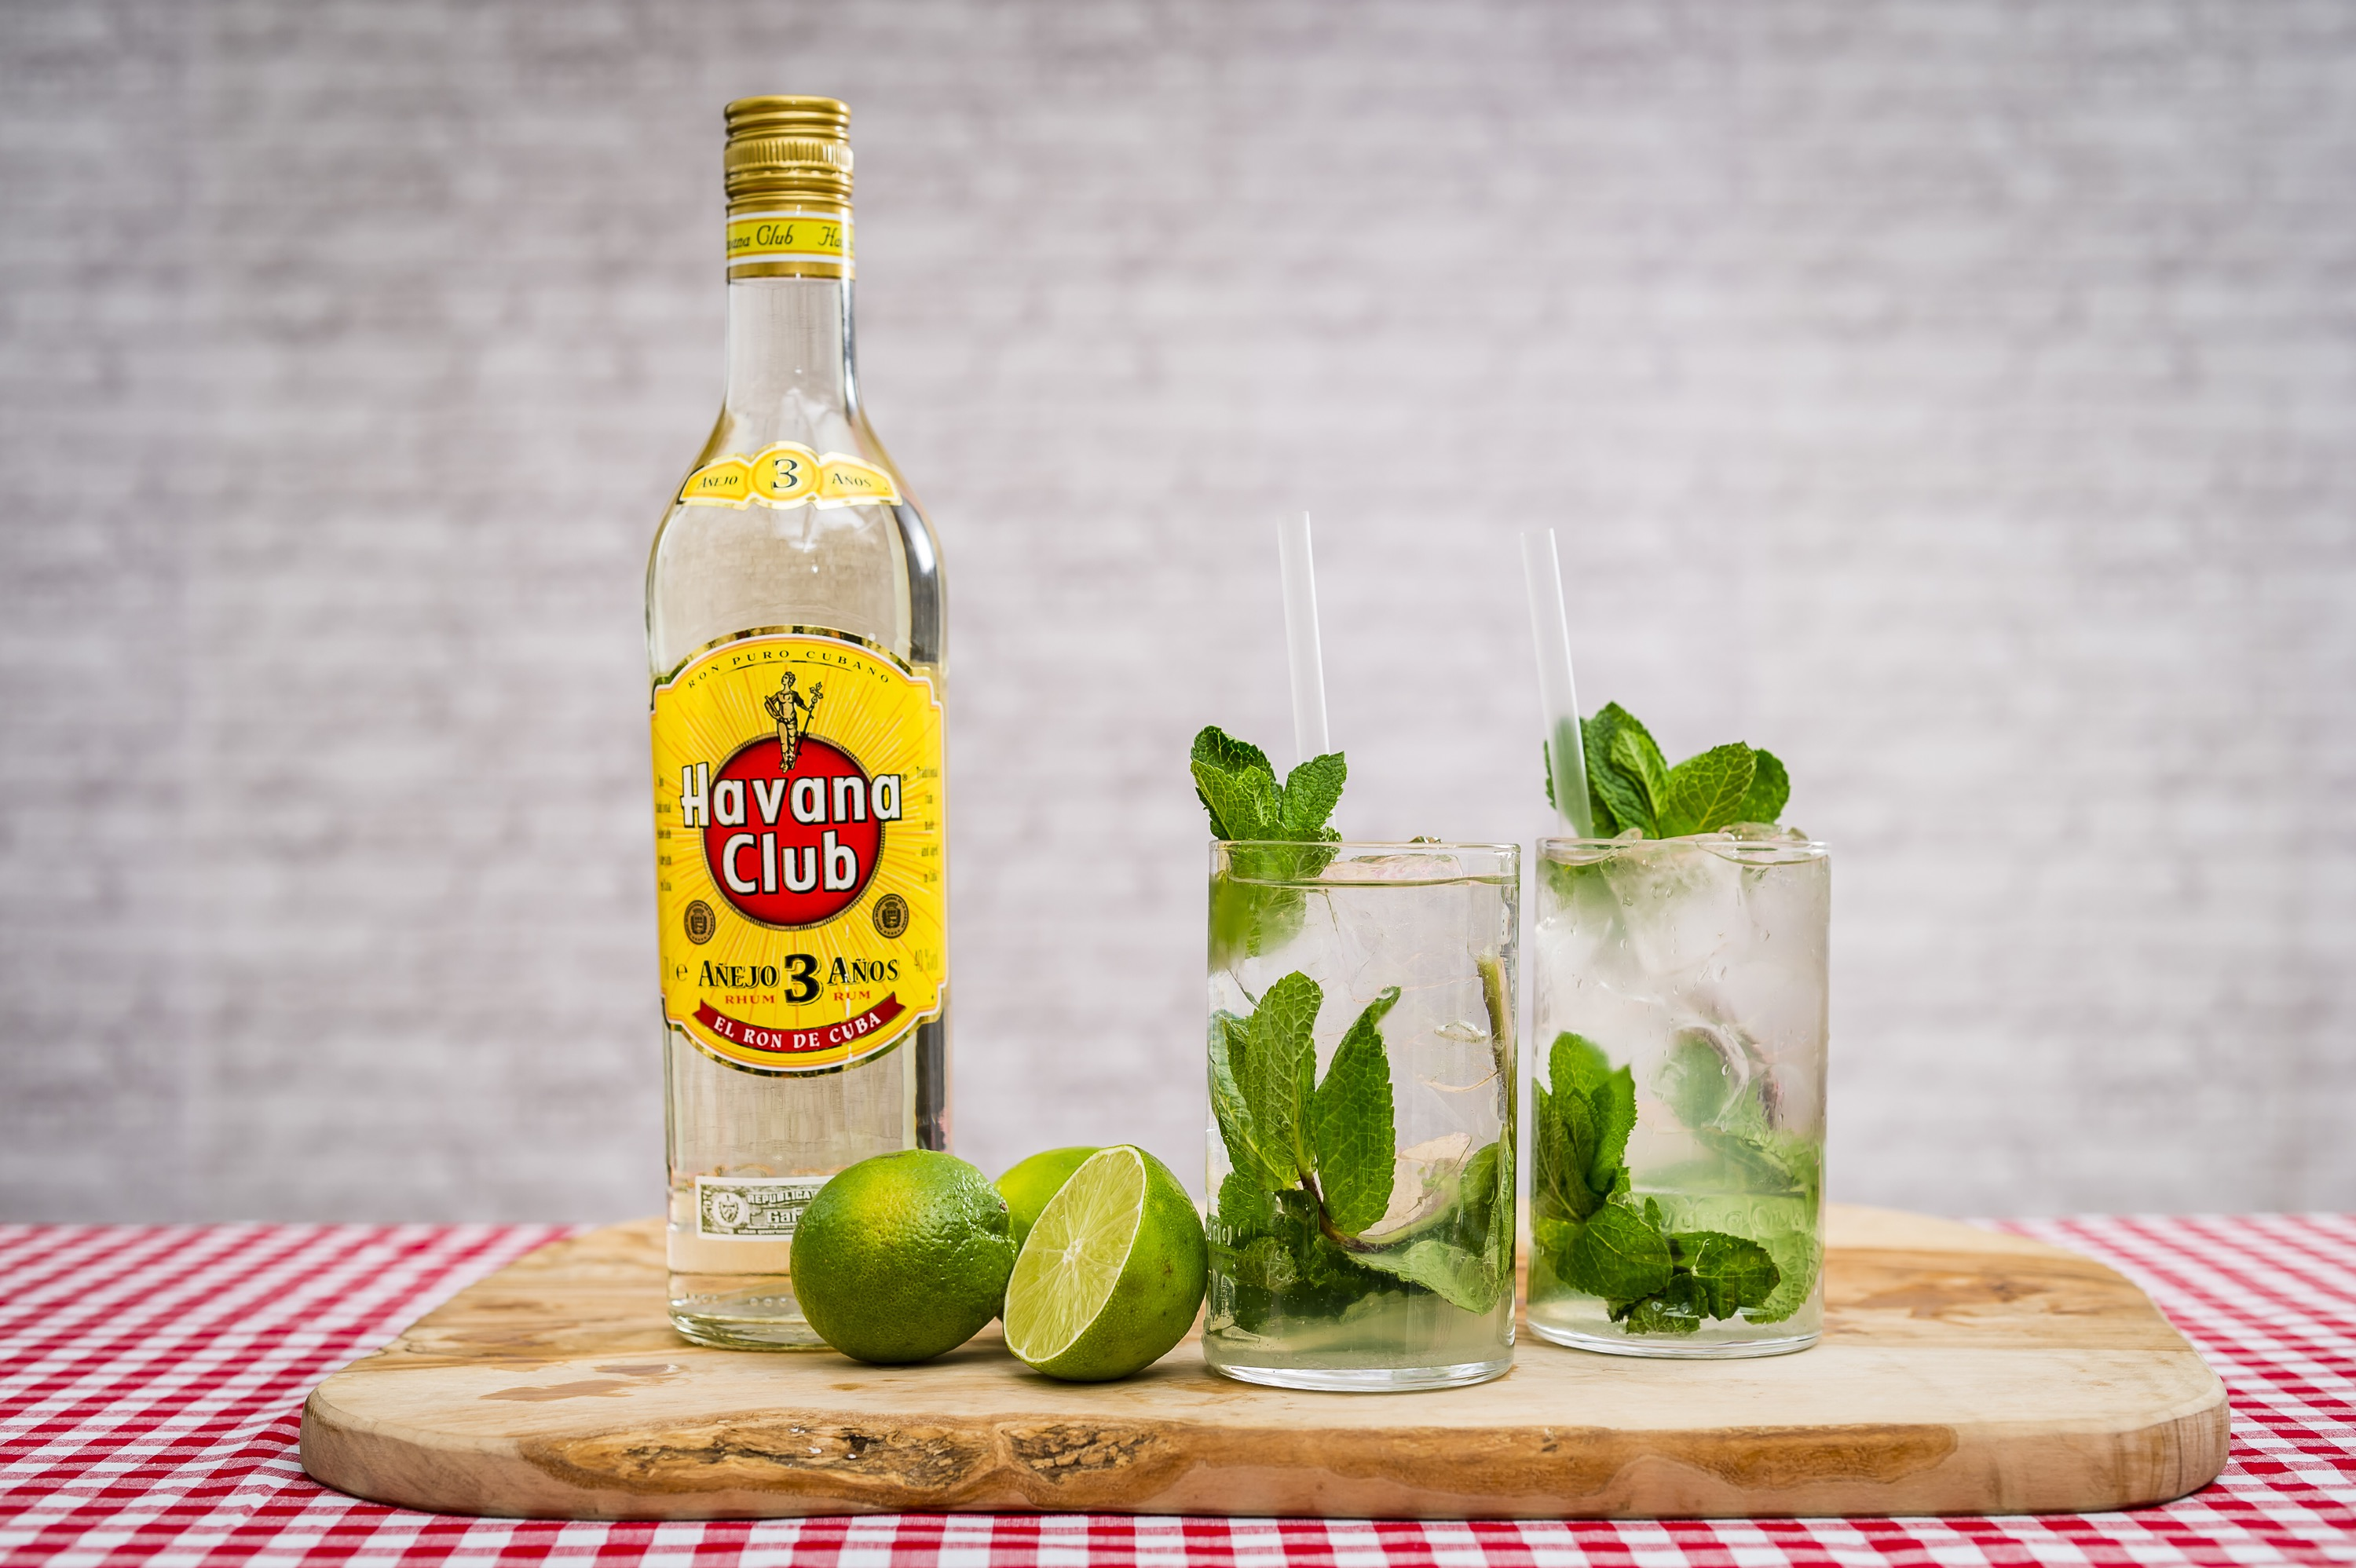 Havana club mojito masterclass a tale of two sittings for Cocktail havana club